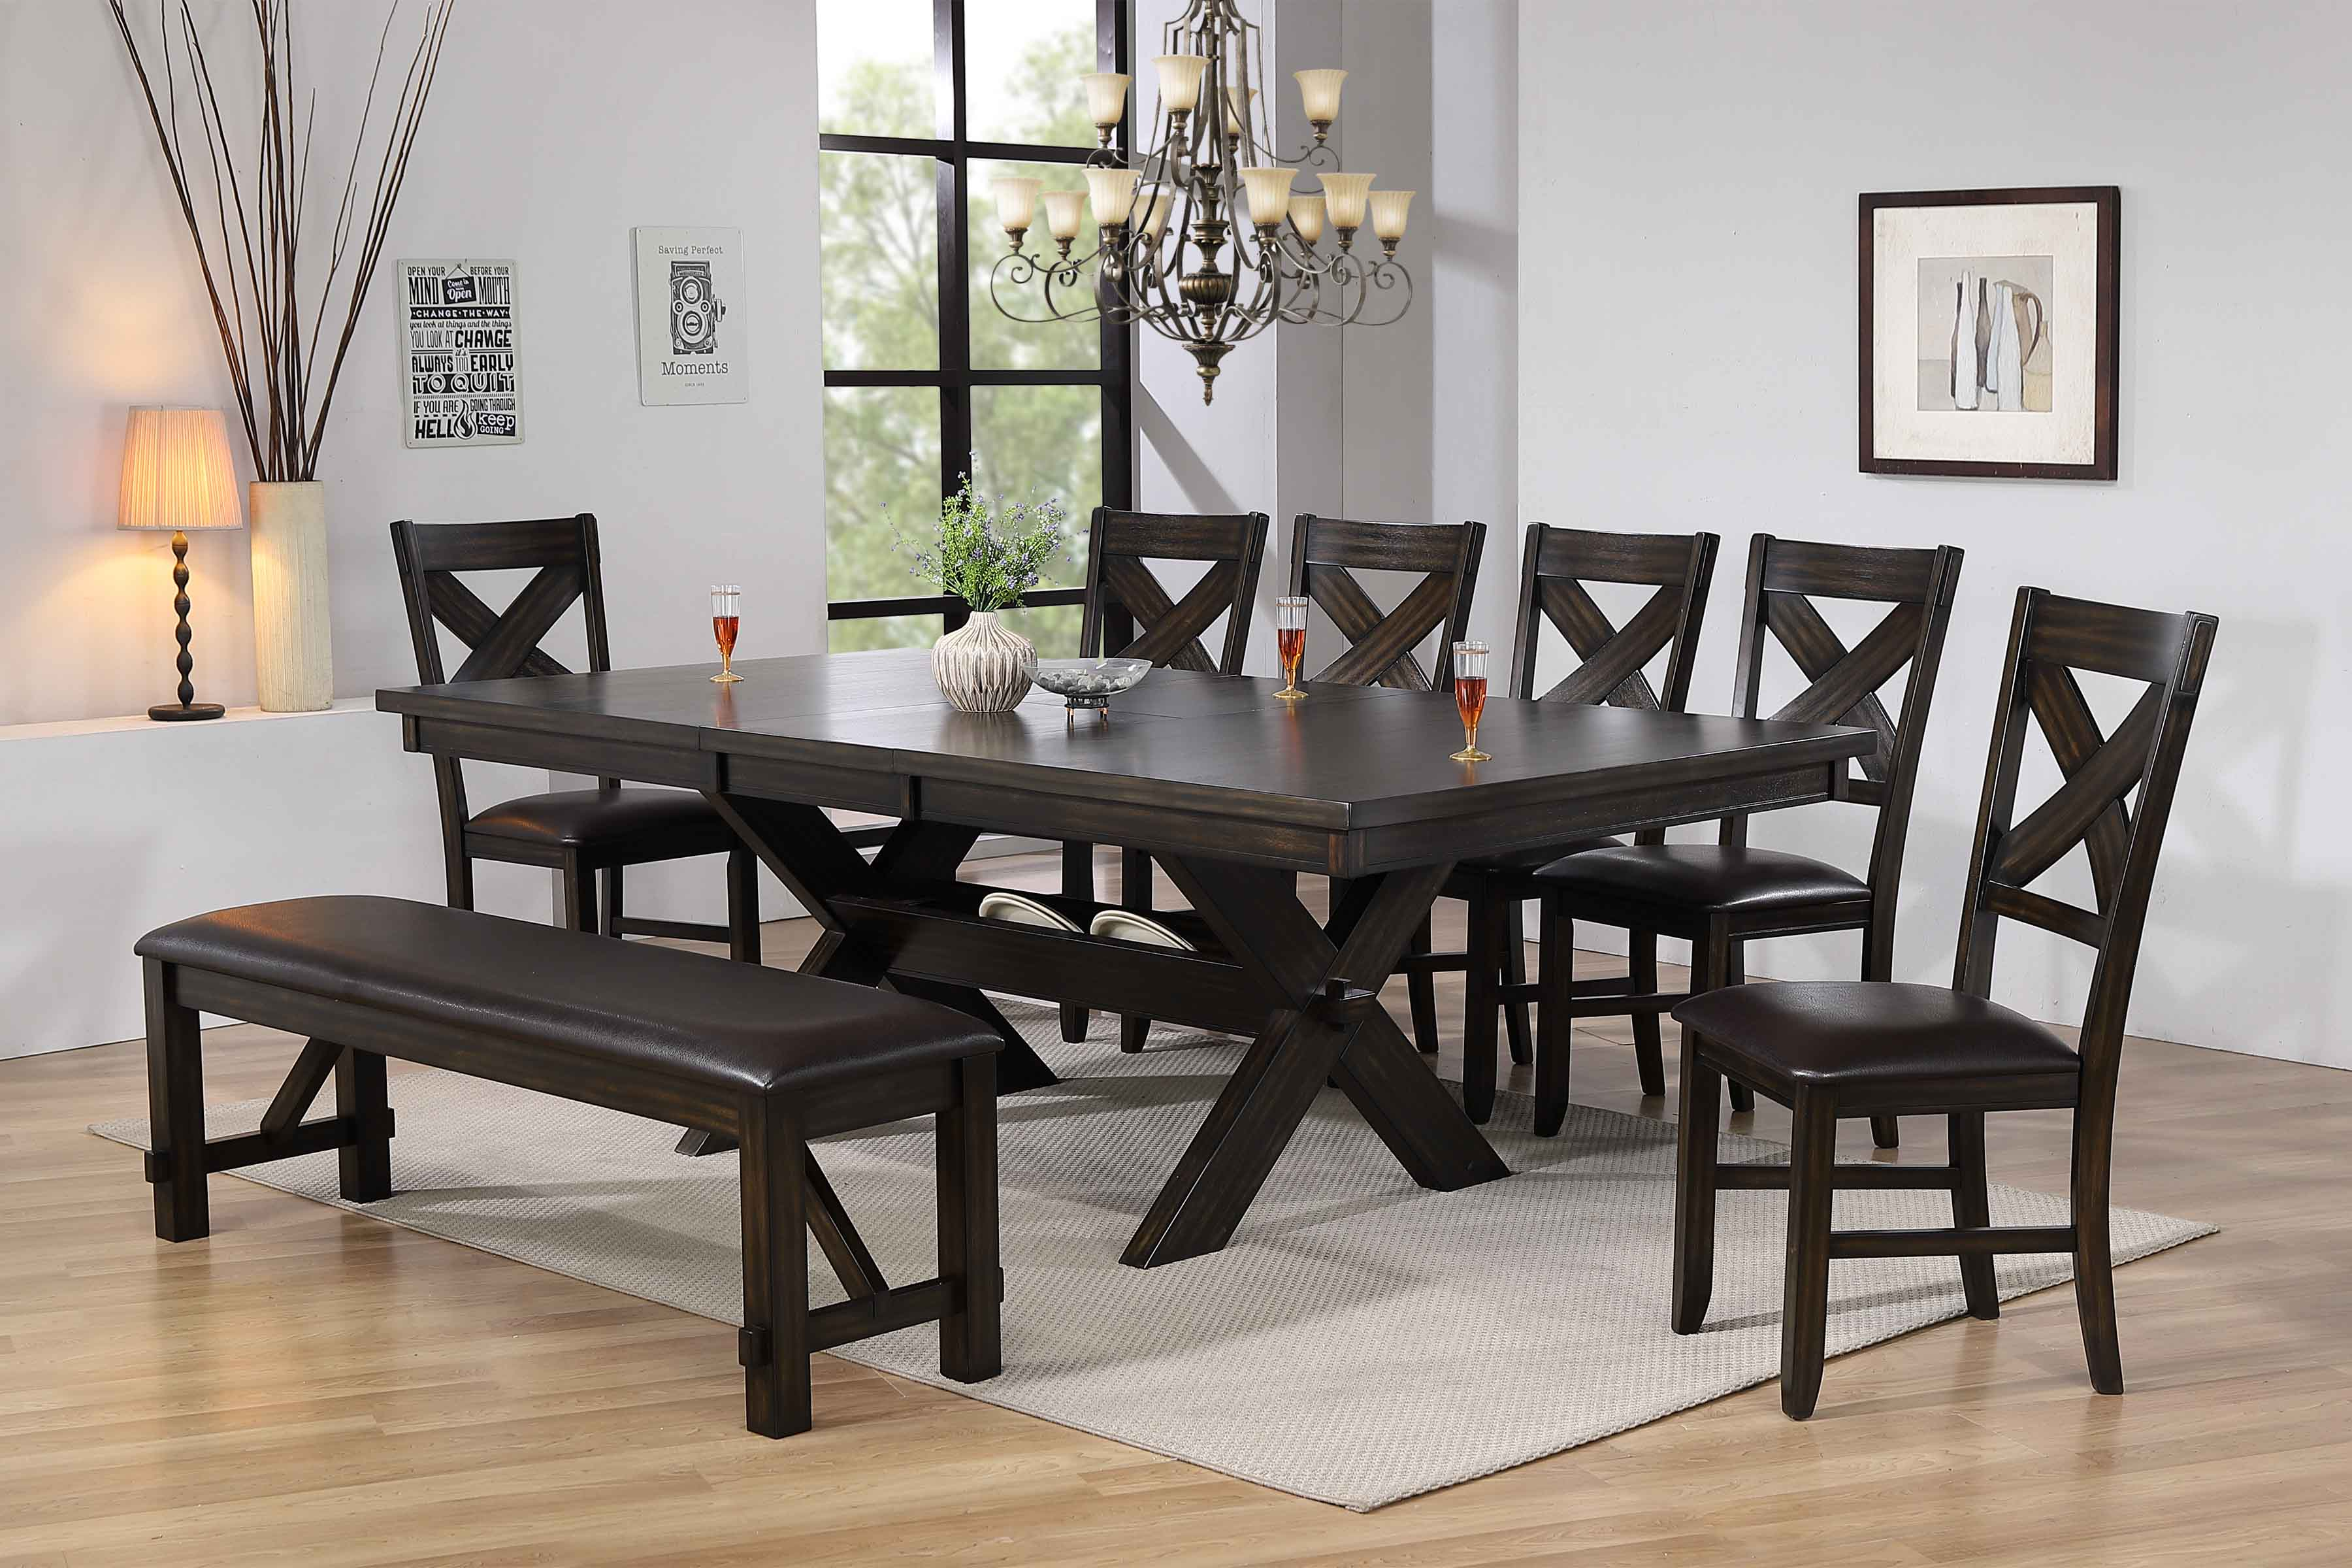 Kelly 8pc Dining Table With 6 Chairs Bench Set Furniture Distribution Center